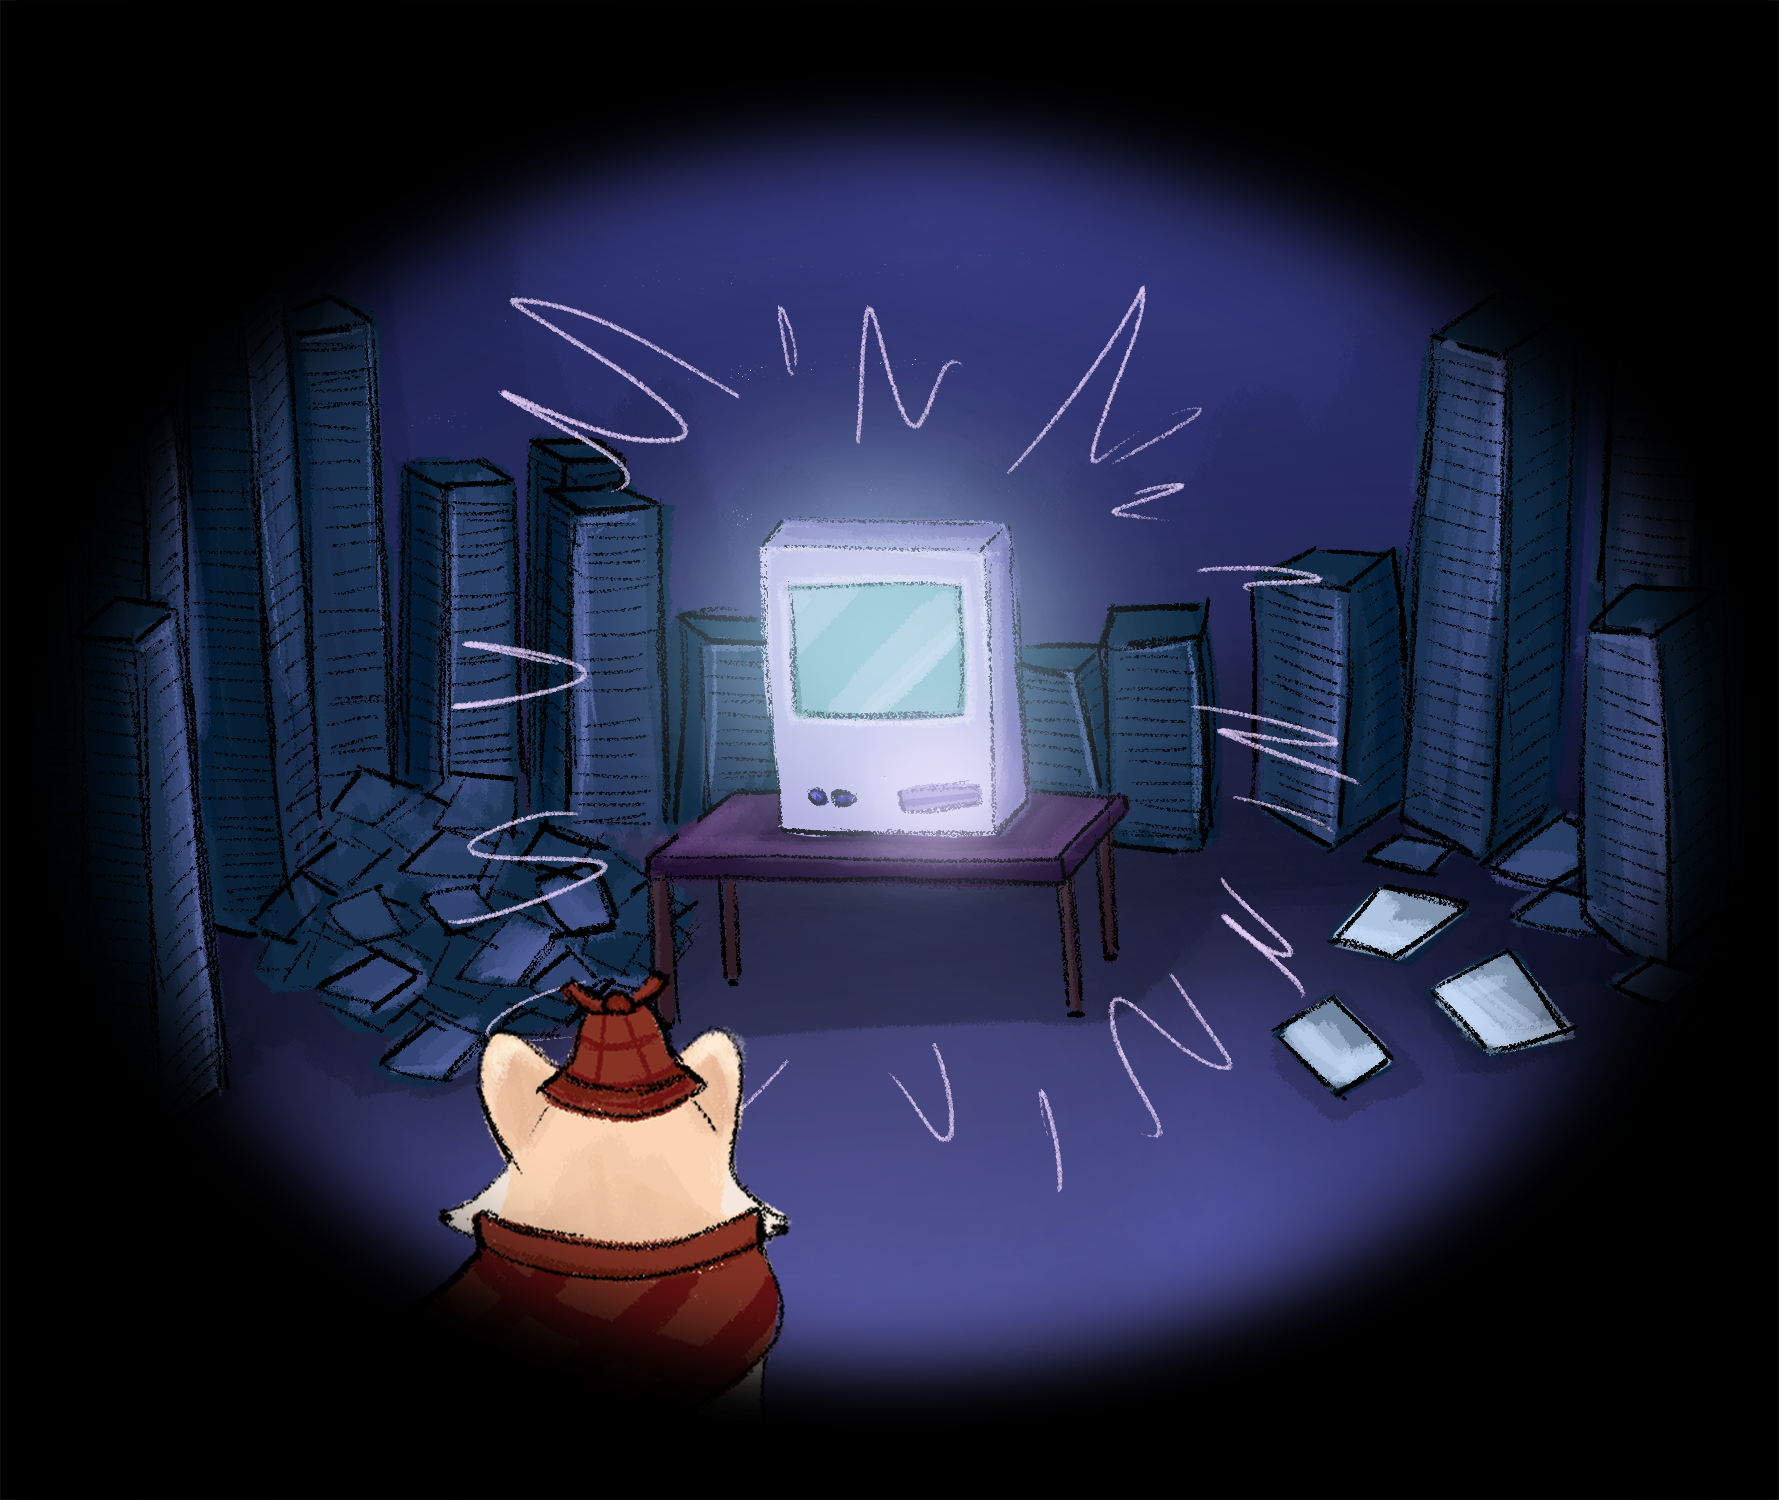 floppy_room_final.png